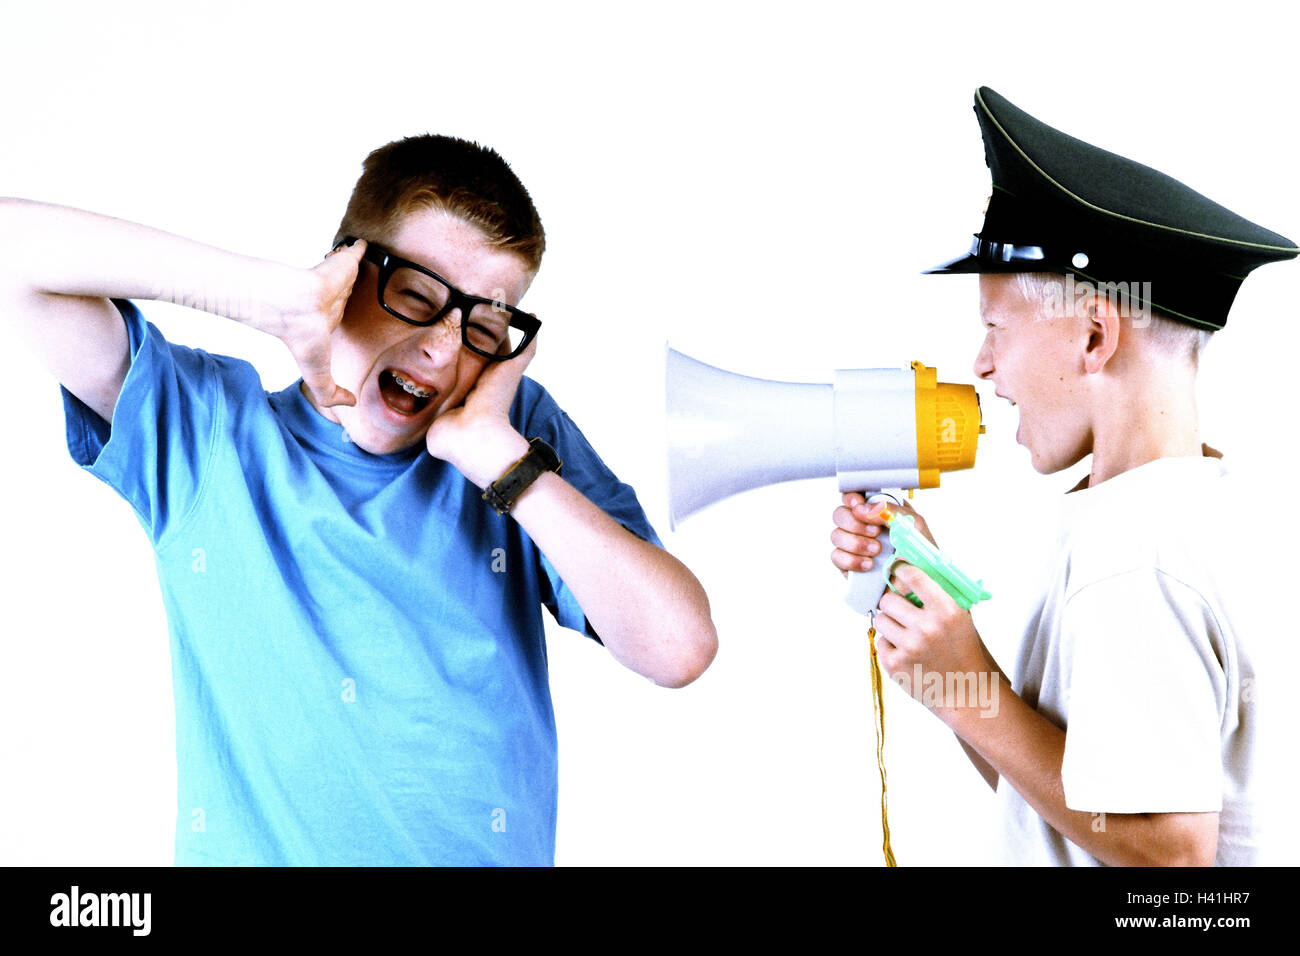 Boy, police cap, megaphone, shout, friend, glasses, startled, half portrait, side view, children, brothers, friends, - Stock Image